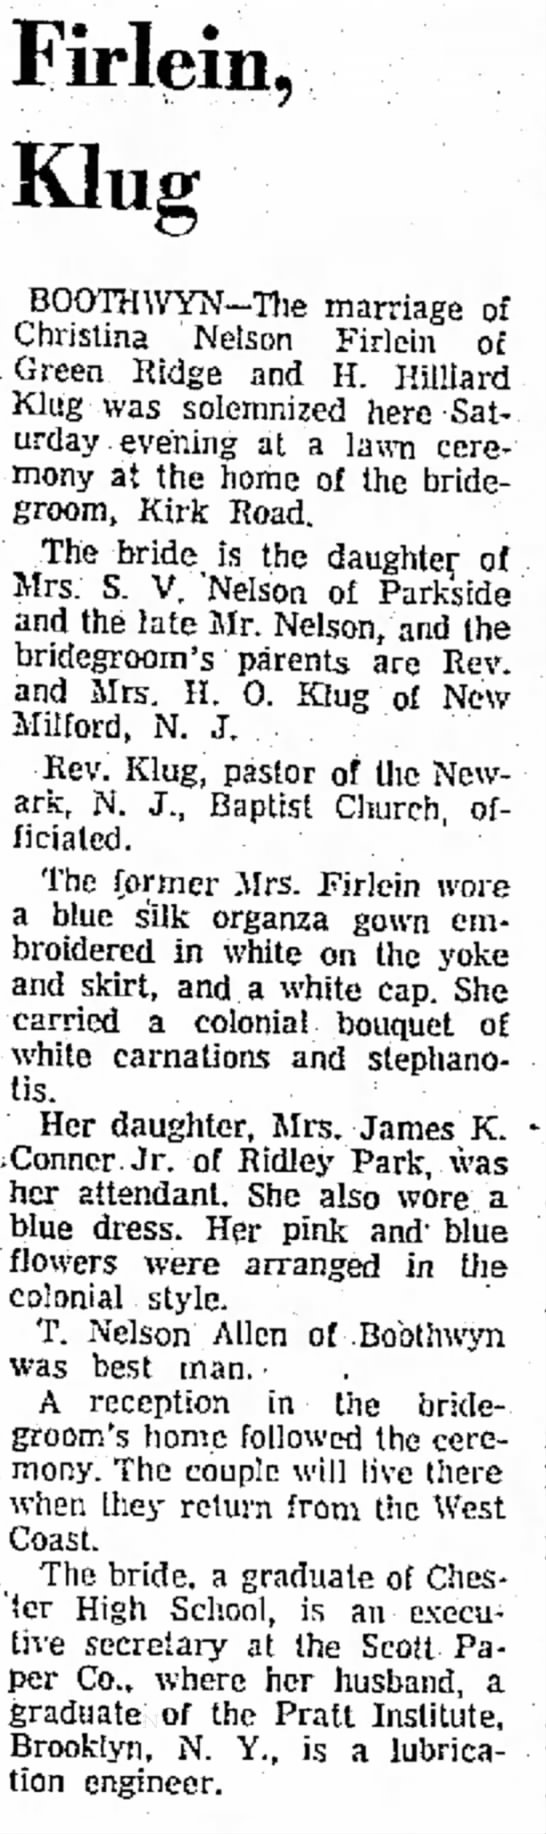 Delaware County Daily Times (Chester, Pennsylvania)   Monday 17 July 1961 -